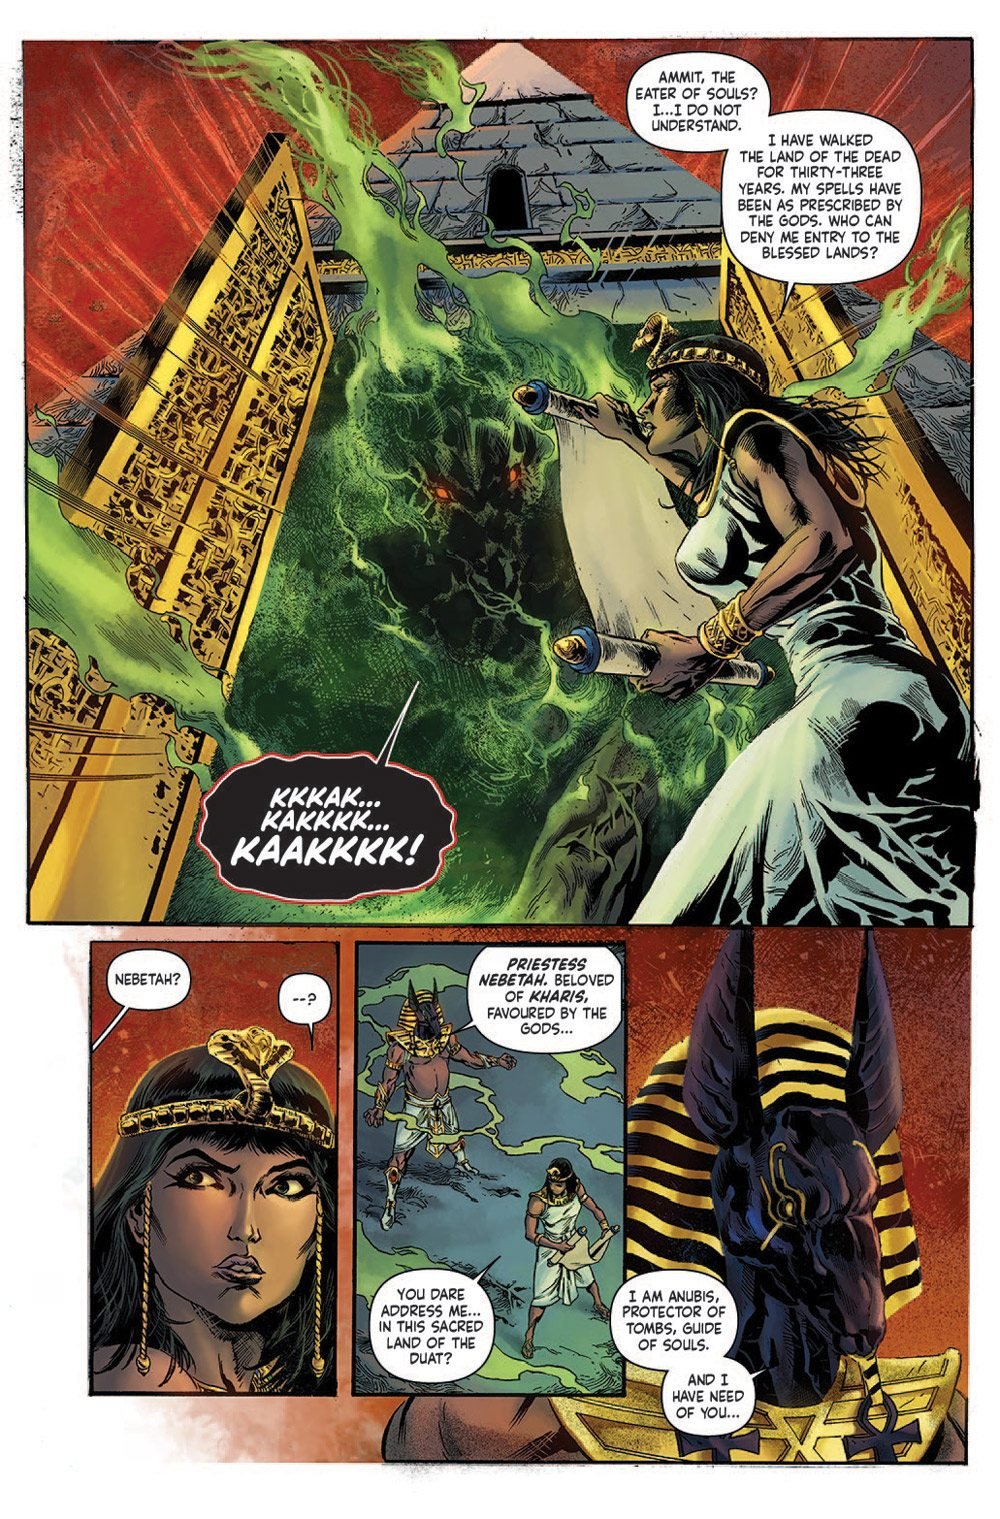 MUMMY Preview 1. revised - Exclusive Reveal: The Mummy Issue #1 Interior Pages and Variant Cover